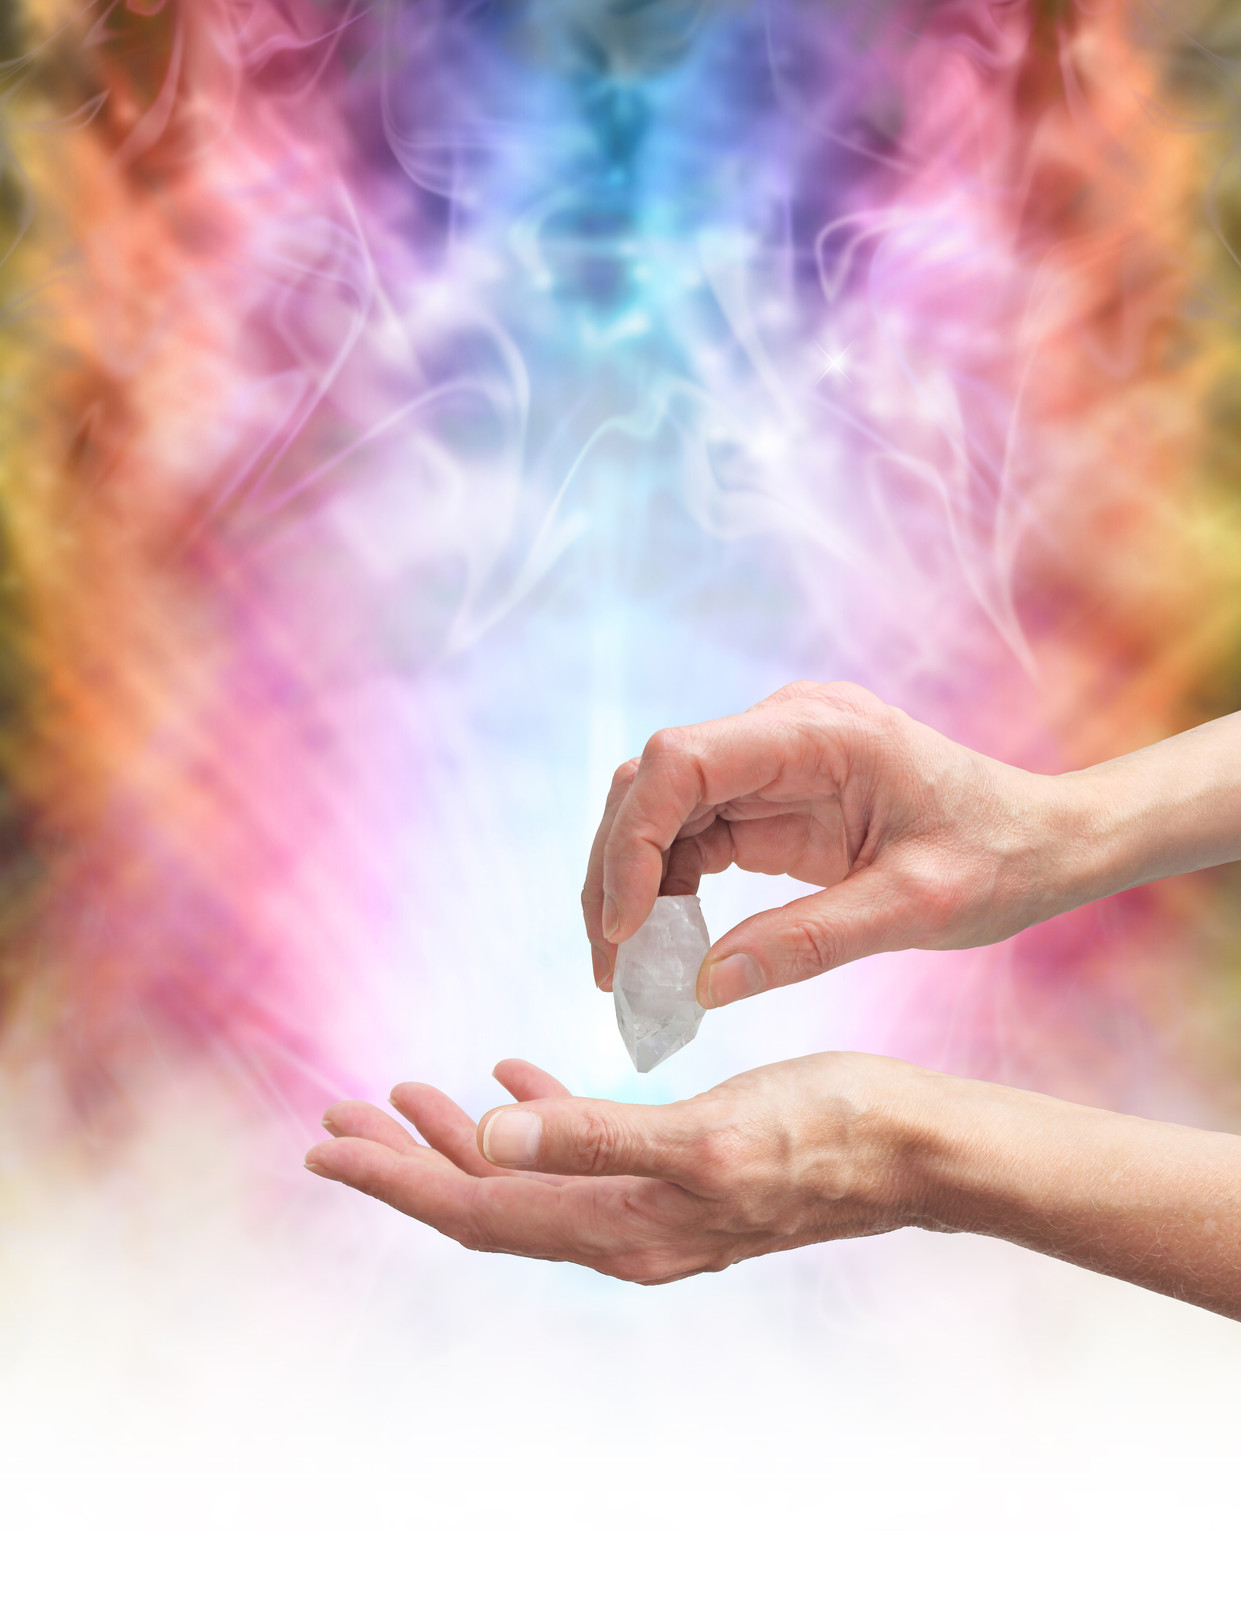 Hand holding a quartz point over the other hand